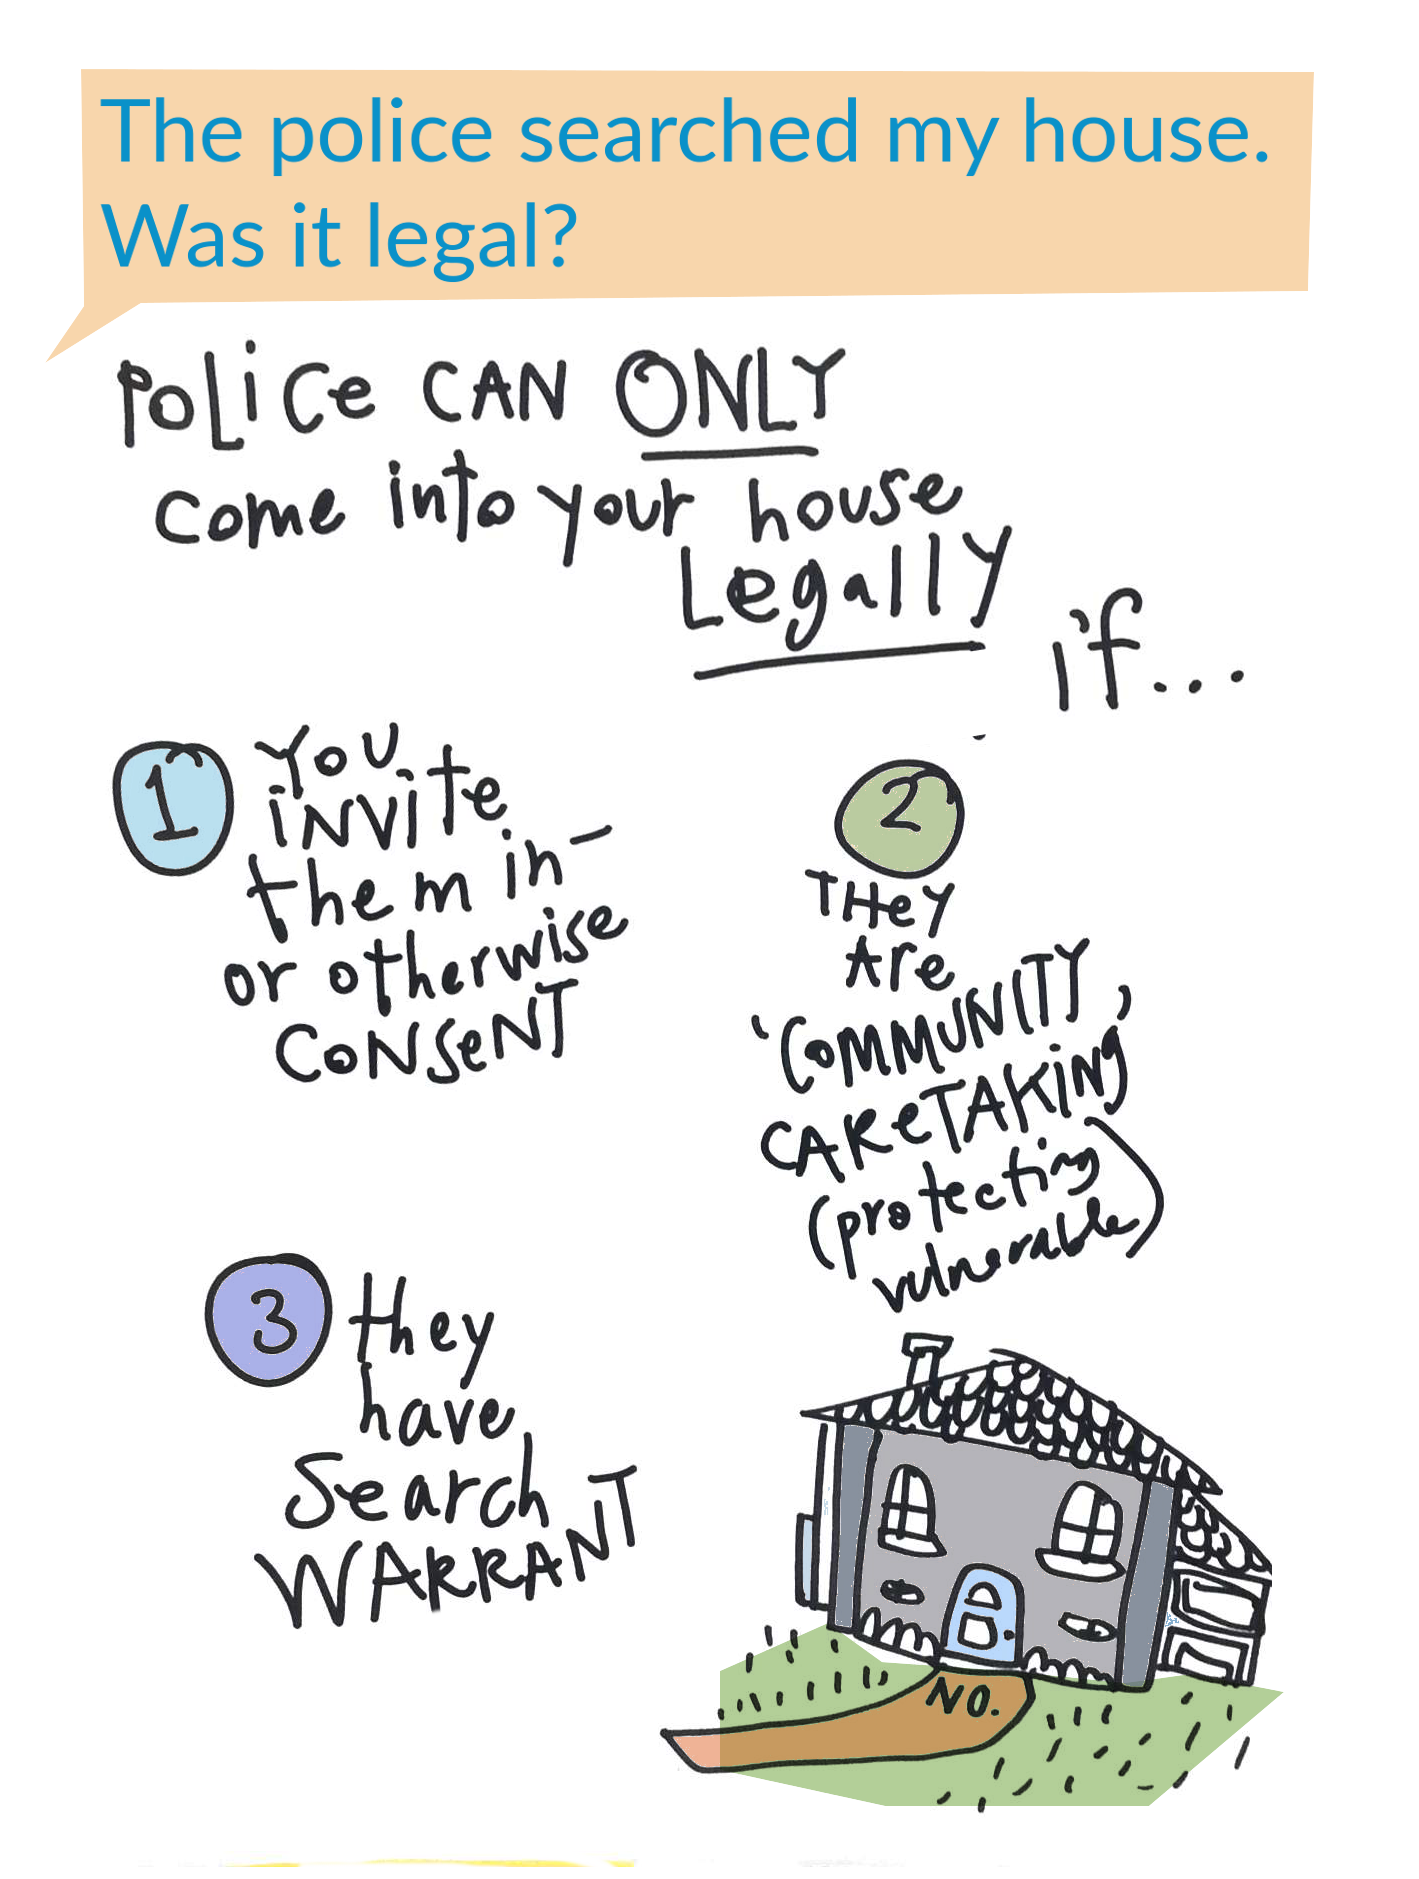 When Is It Legal For The Police To Search Your House